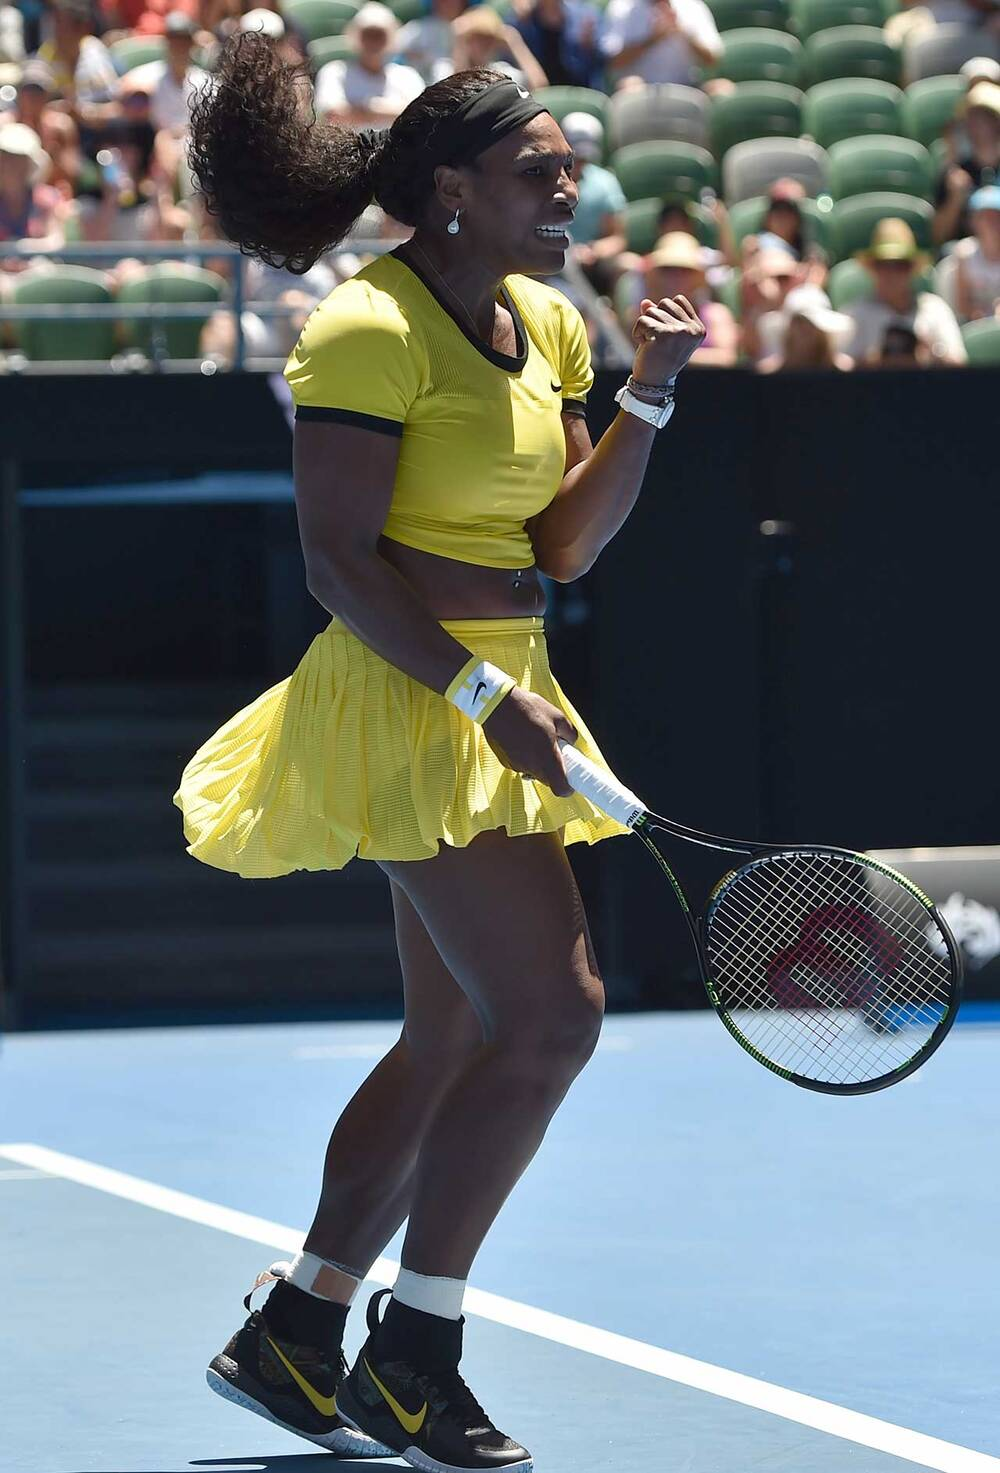 53c2210d36e8 Here's a reverse chronological look at Serena Williams's fashion at grand  slam events over the years